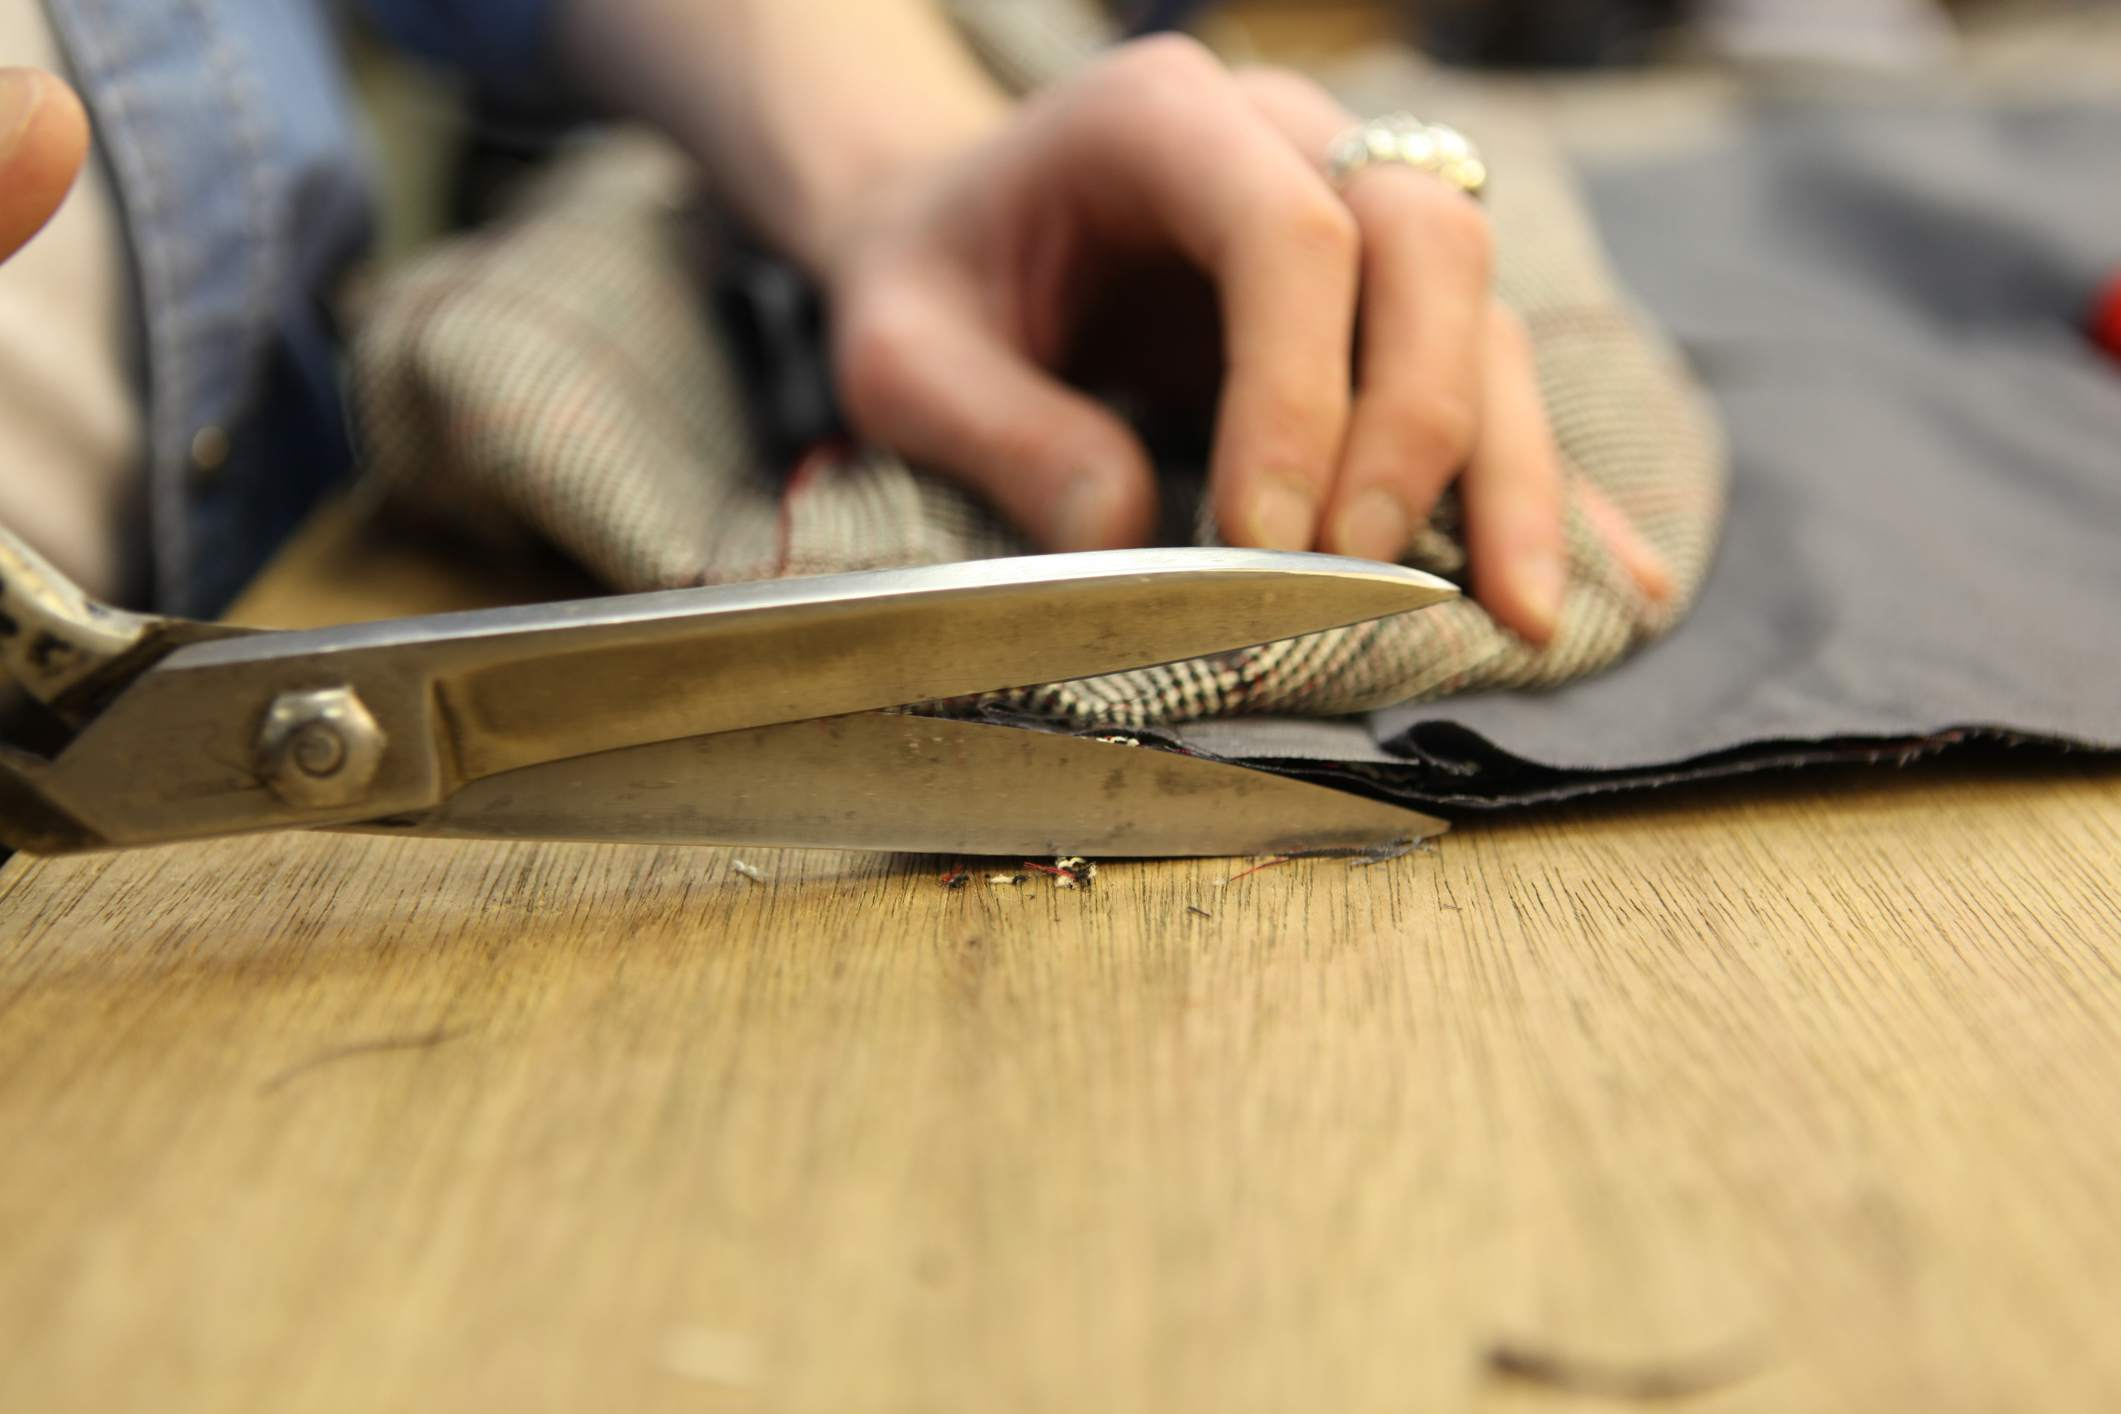 Cutting with shears